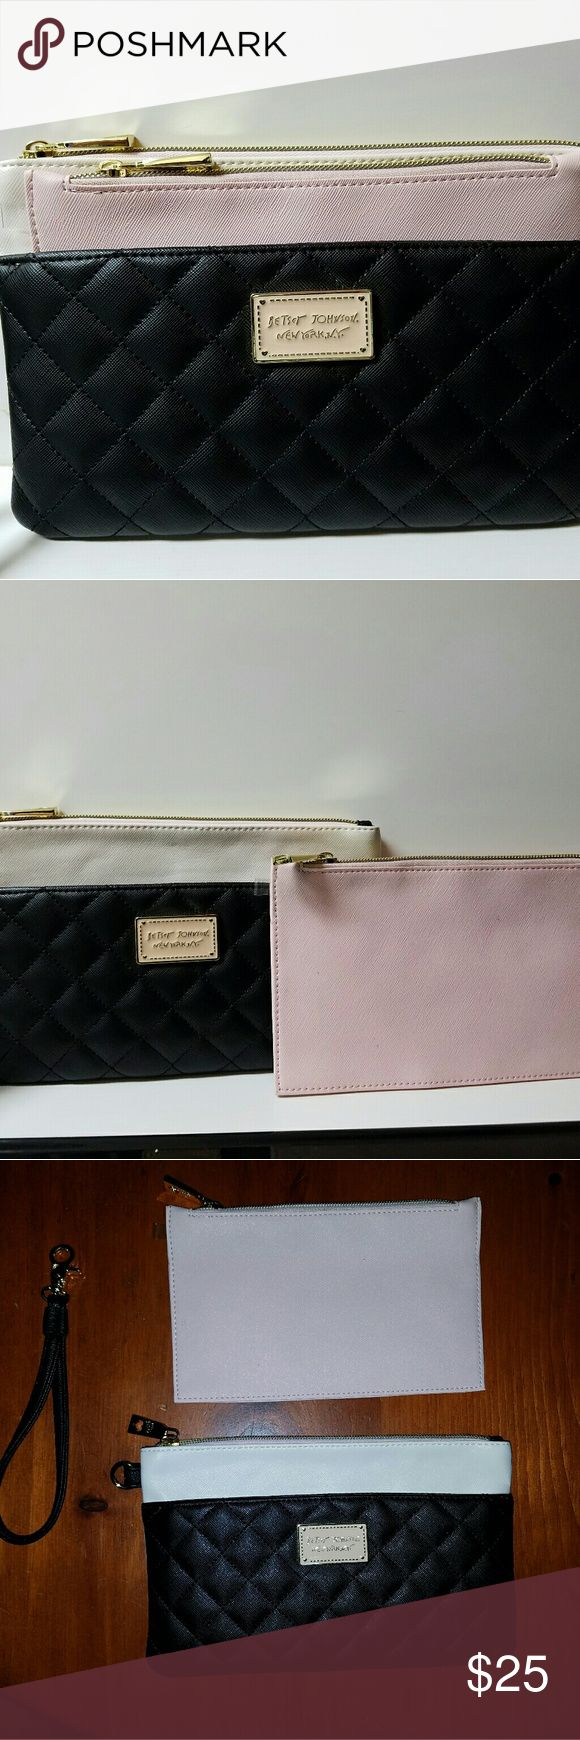 Betsey Johnson Wristlet / Clutch Betsey Johnson black and white wristlet bag, with removable baby pink insert bag and removable wrist strap. The wristlet bag is white with the large black pocket on the front, with a baby pink logo. Baby pink bag slips into the front pocket of the wristlet bag. NWOT. Betsey Johnson Bags Clutches & Wristlets